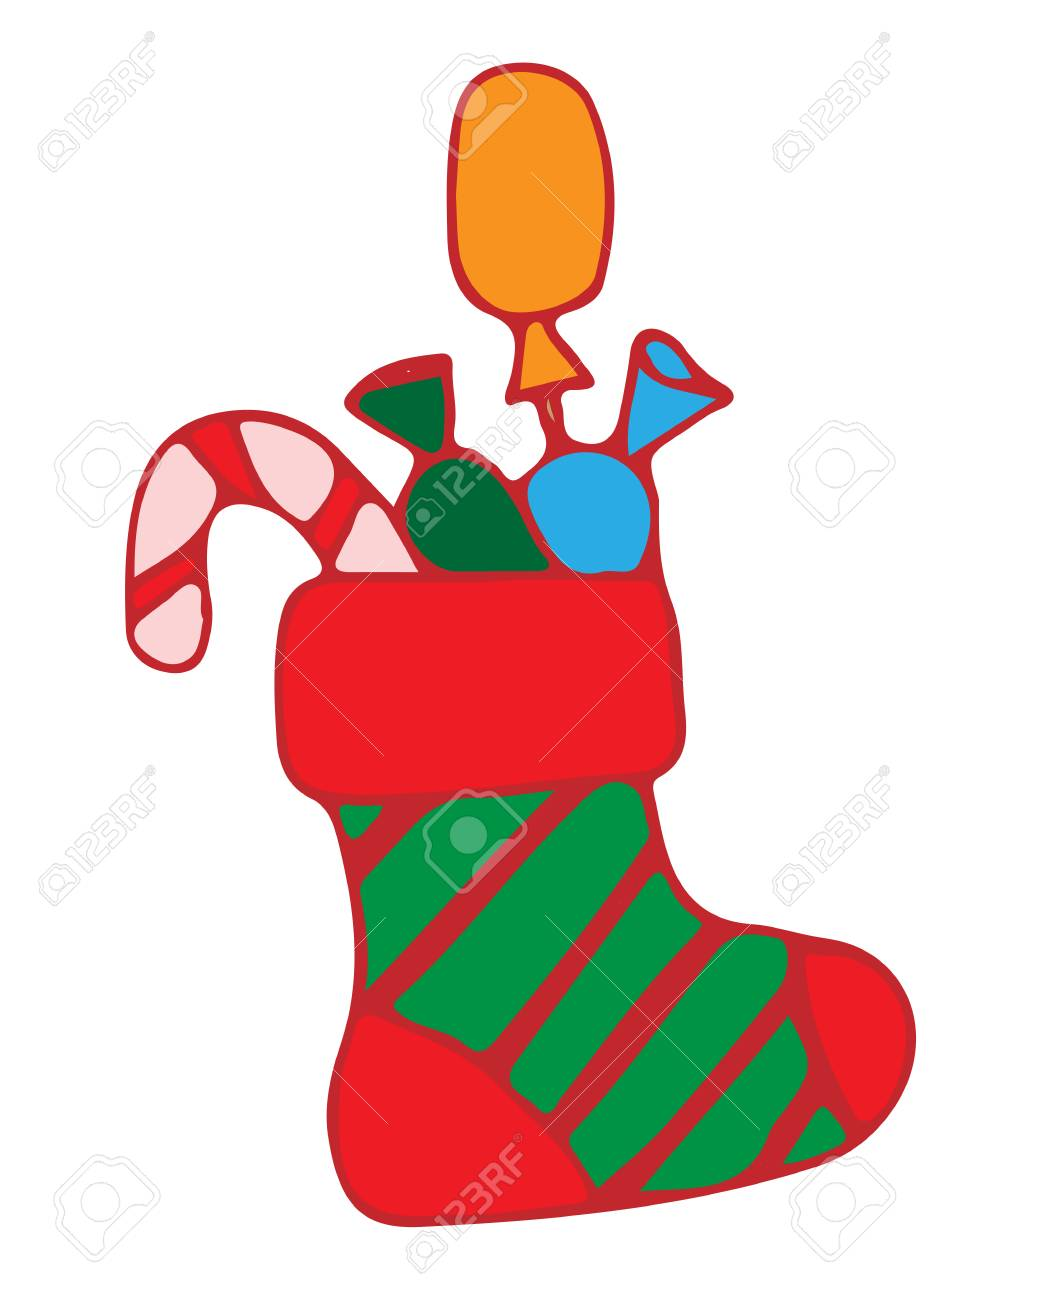 Red Christmas Stocking With Candy Illustration For Greeting